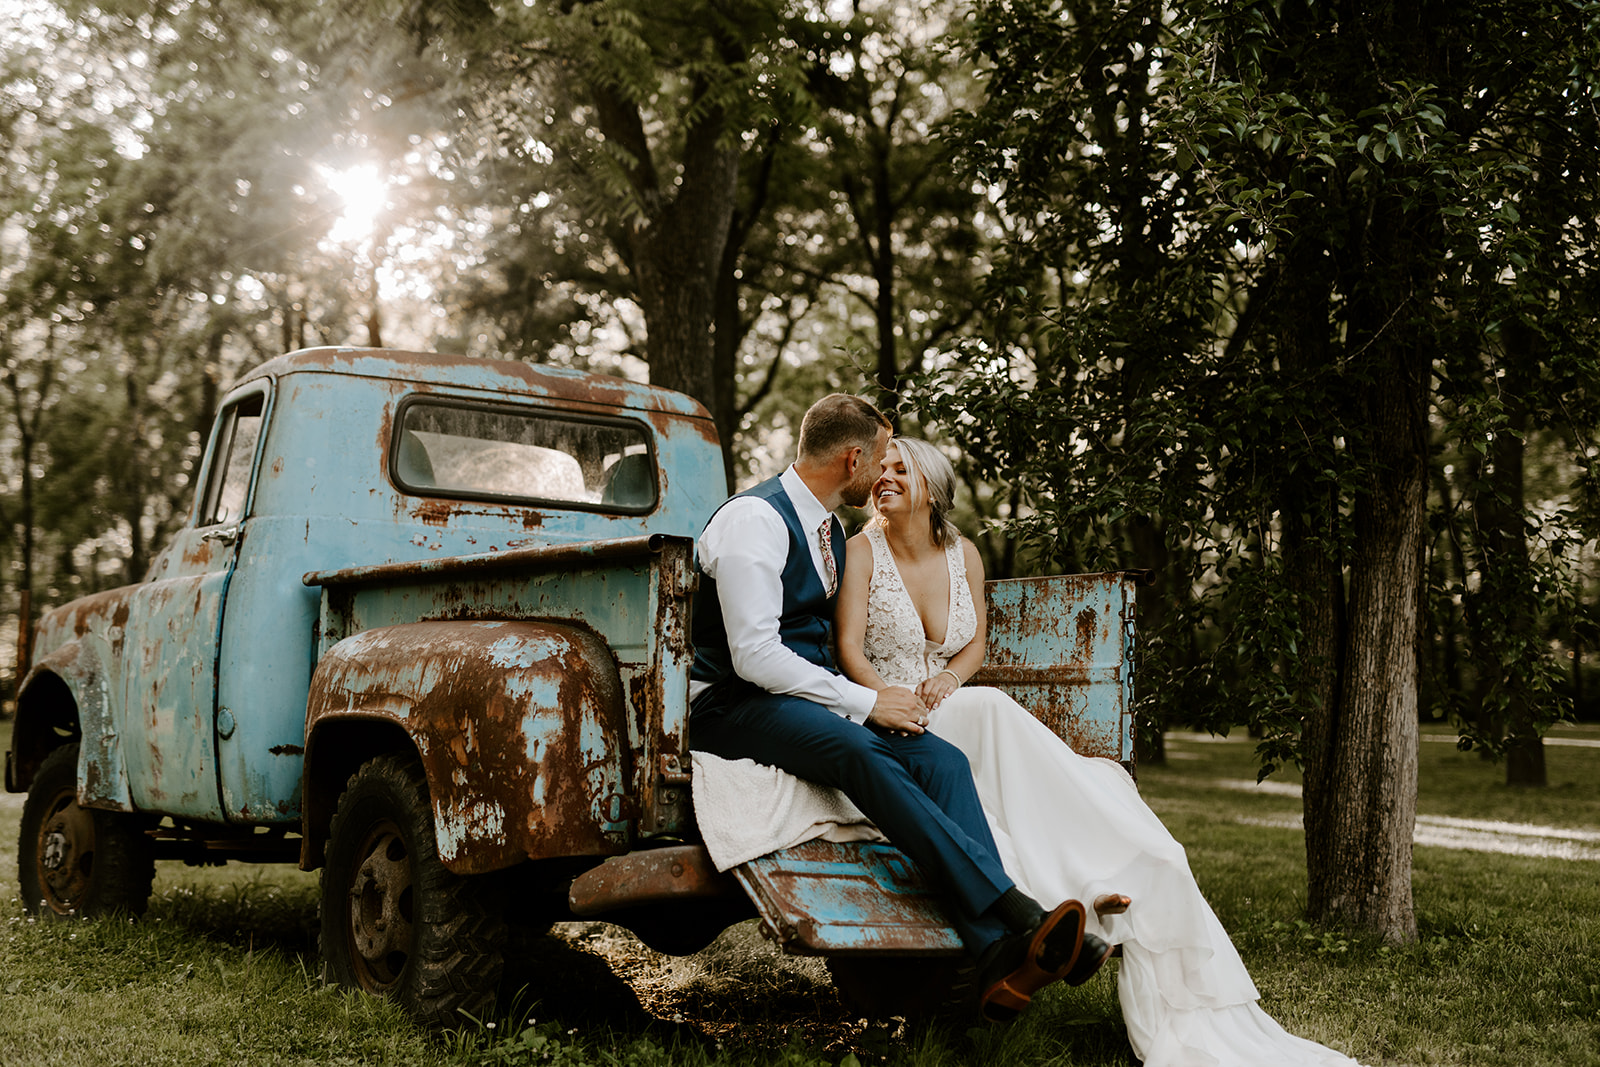 tasks to delegate - bride and groom sharing a moment on the back of an old truck